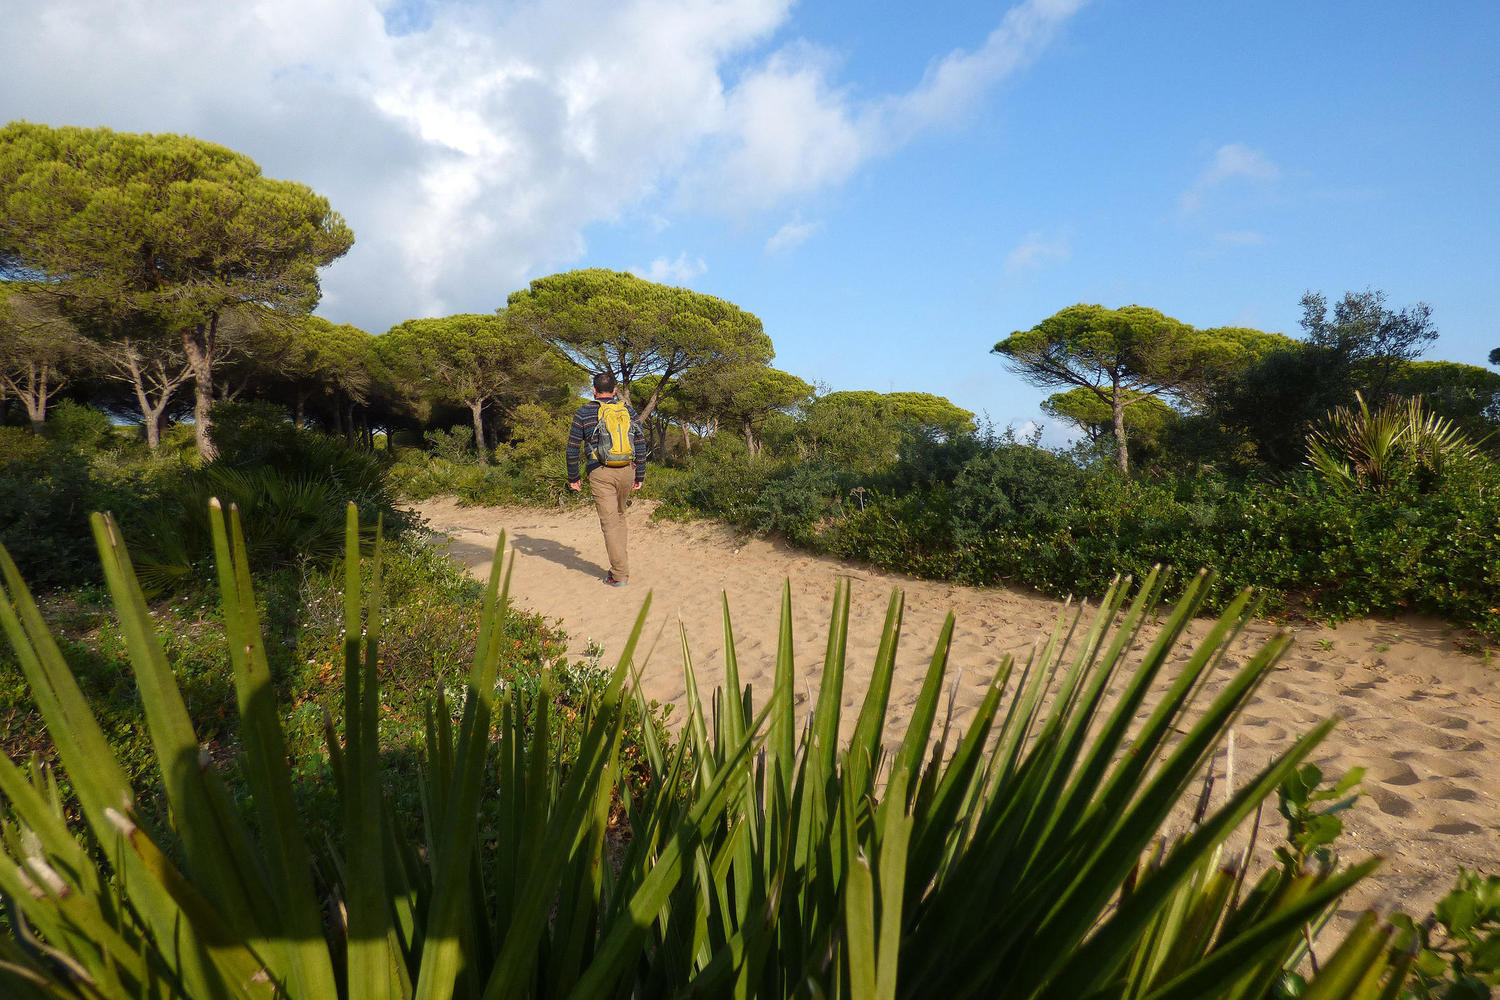 Hiking in the pine forest of Las Breñas Natural Park in Barbate